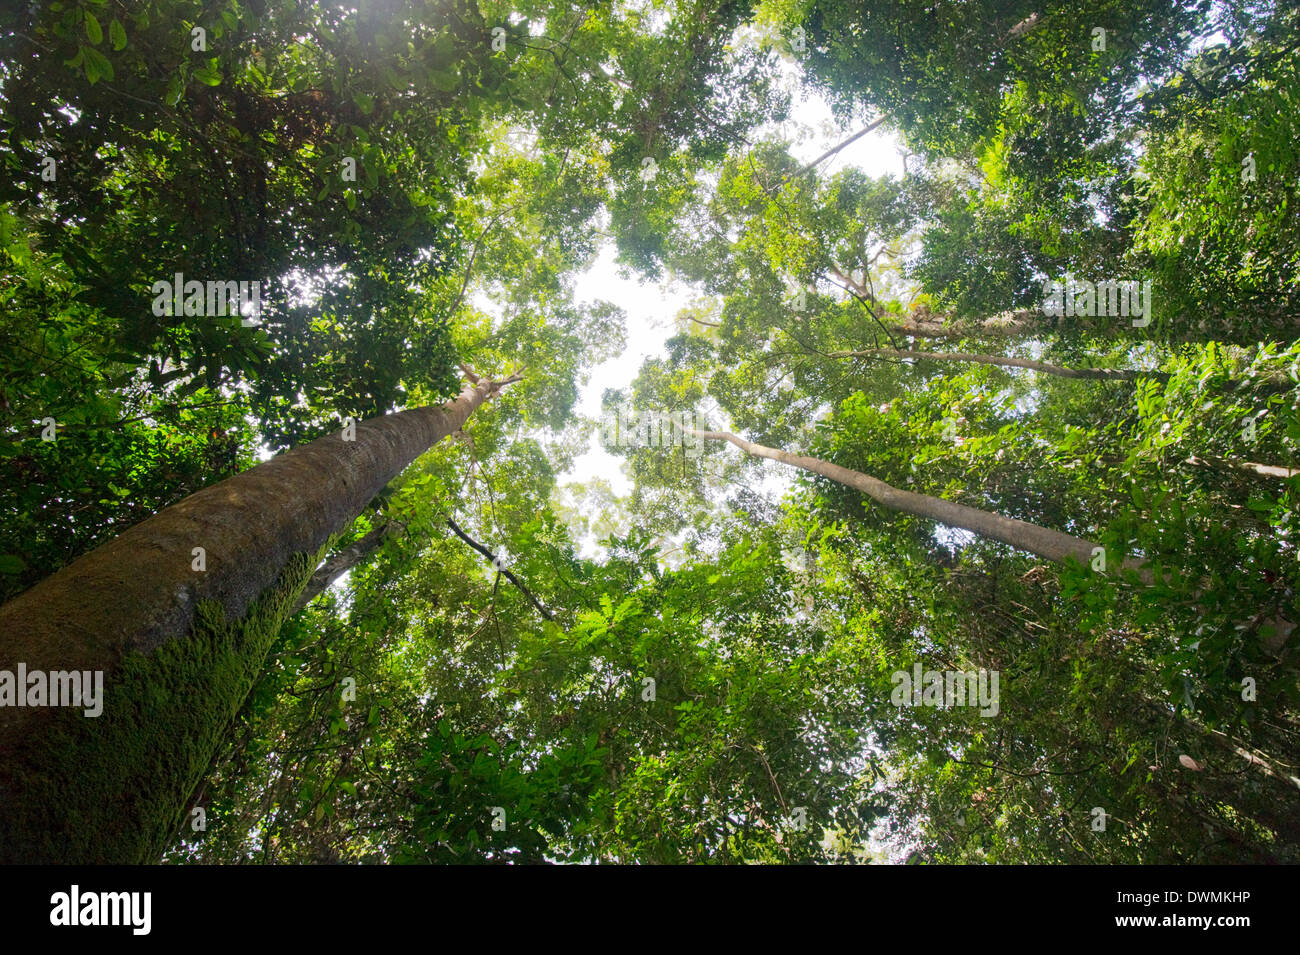 Tall dipterocarp trees in primary rainforest in the Maliau Basin Conservation Area, Sabah, Borneo, Malaysia, Southeast Stock Photo